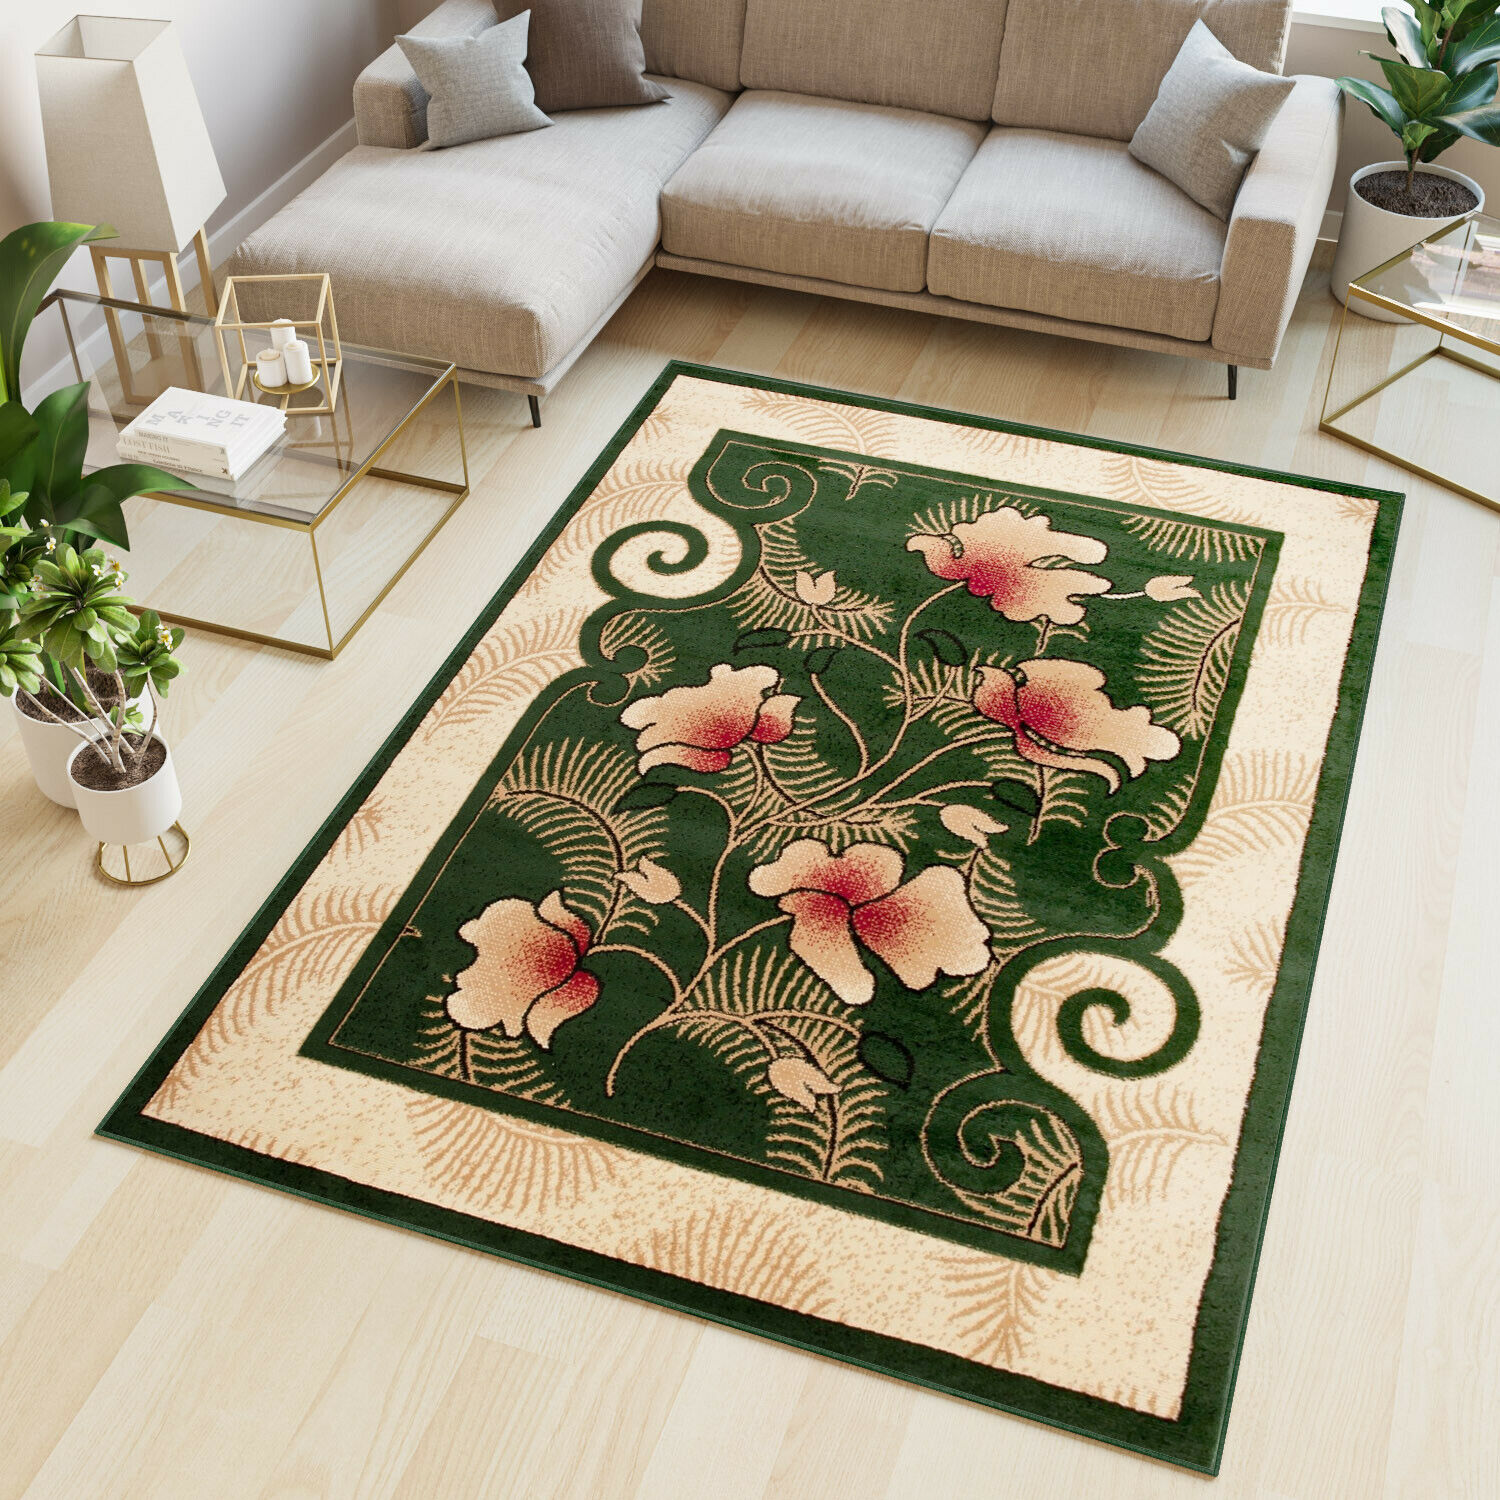 Picture of: Green Area Rug Small Medium Extra Large Classical Designer Carpet Floral Pattern Ebay